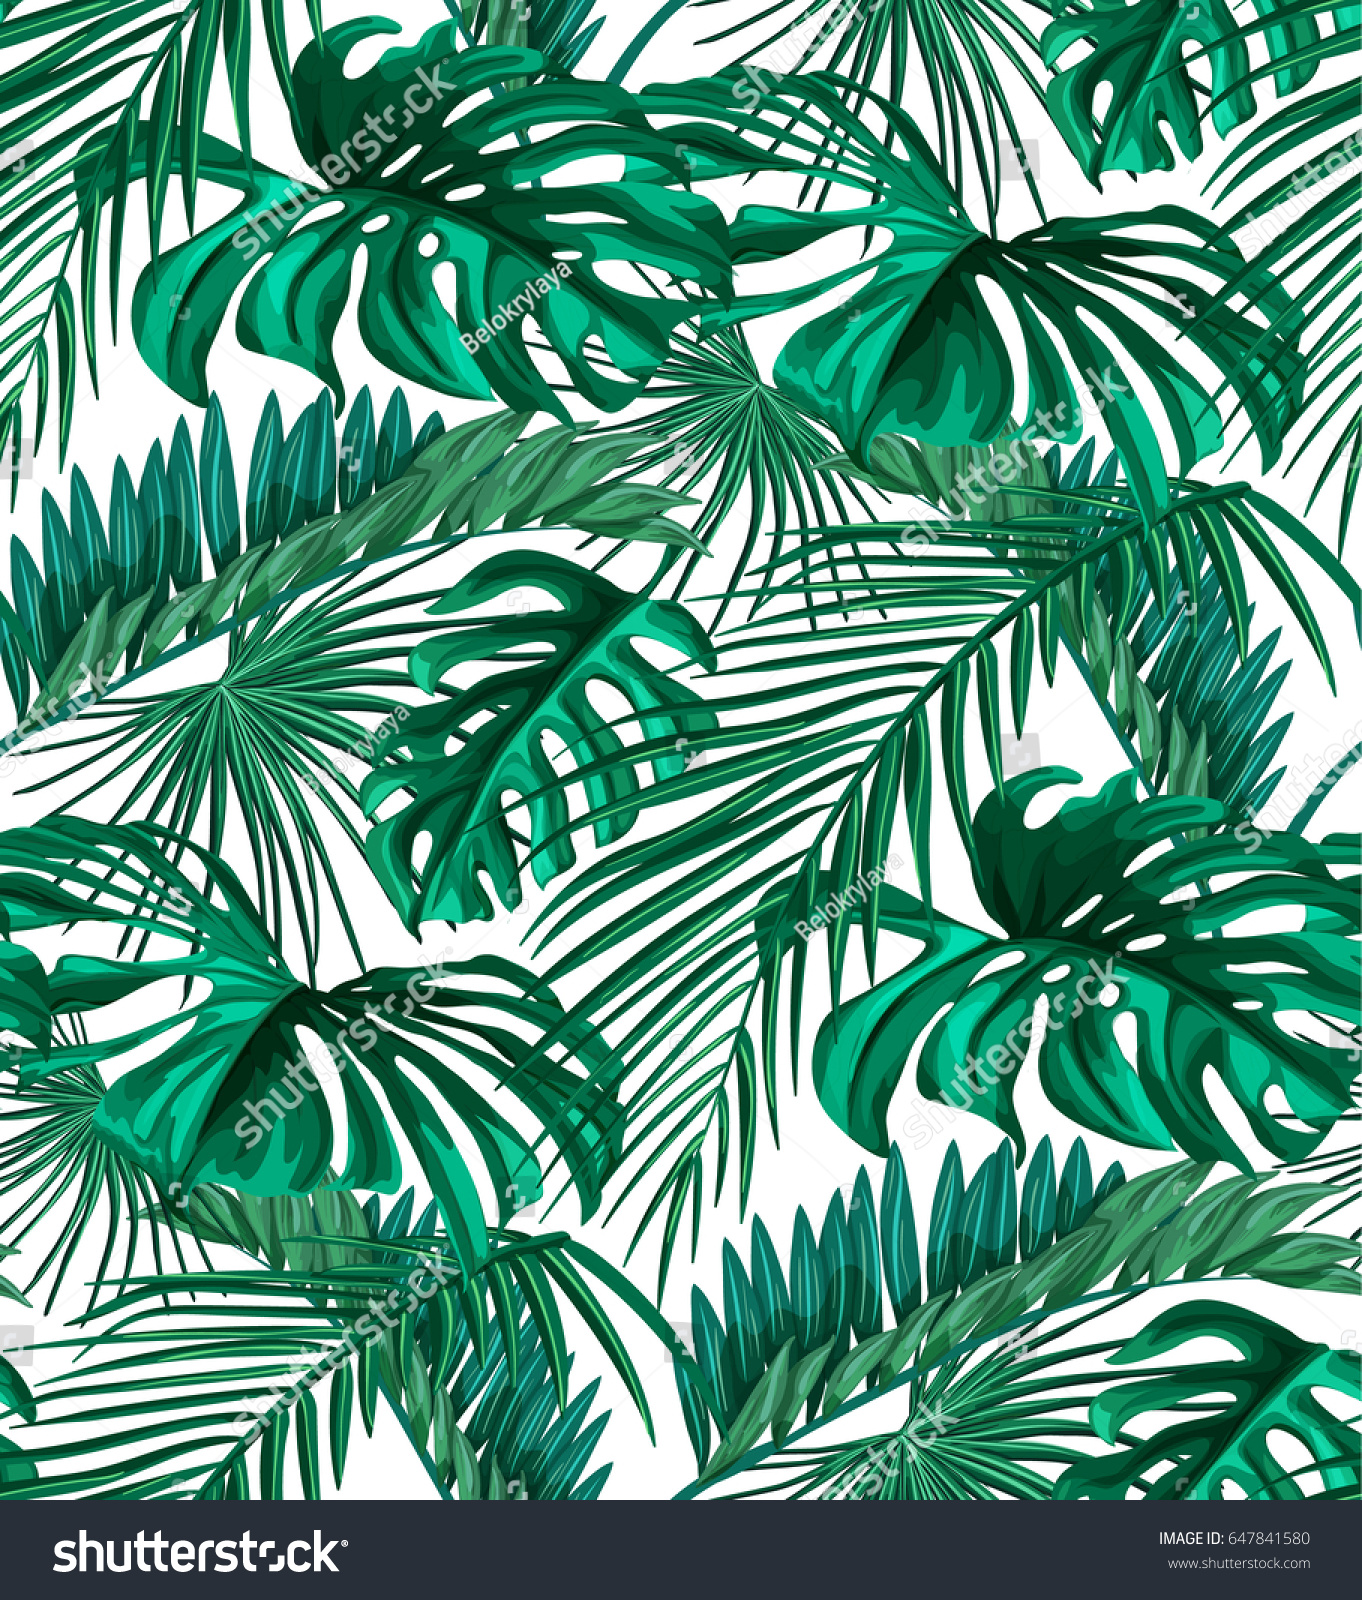 Seamless Pattern Tropical Leaves Green Palm 647841580